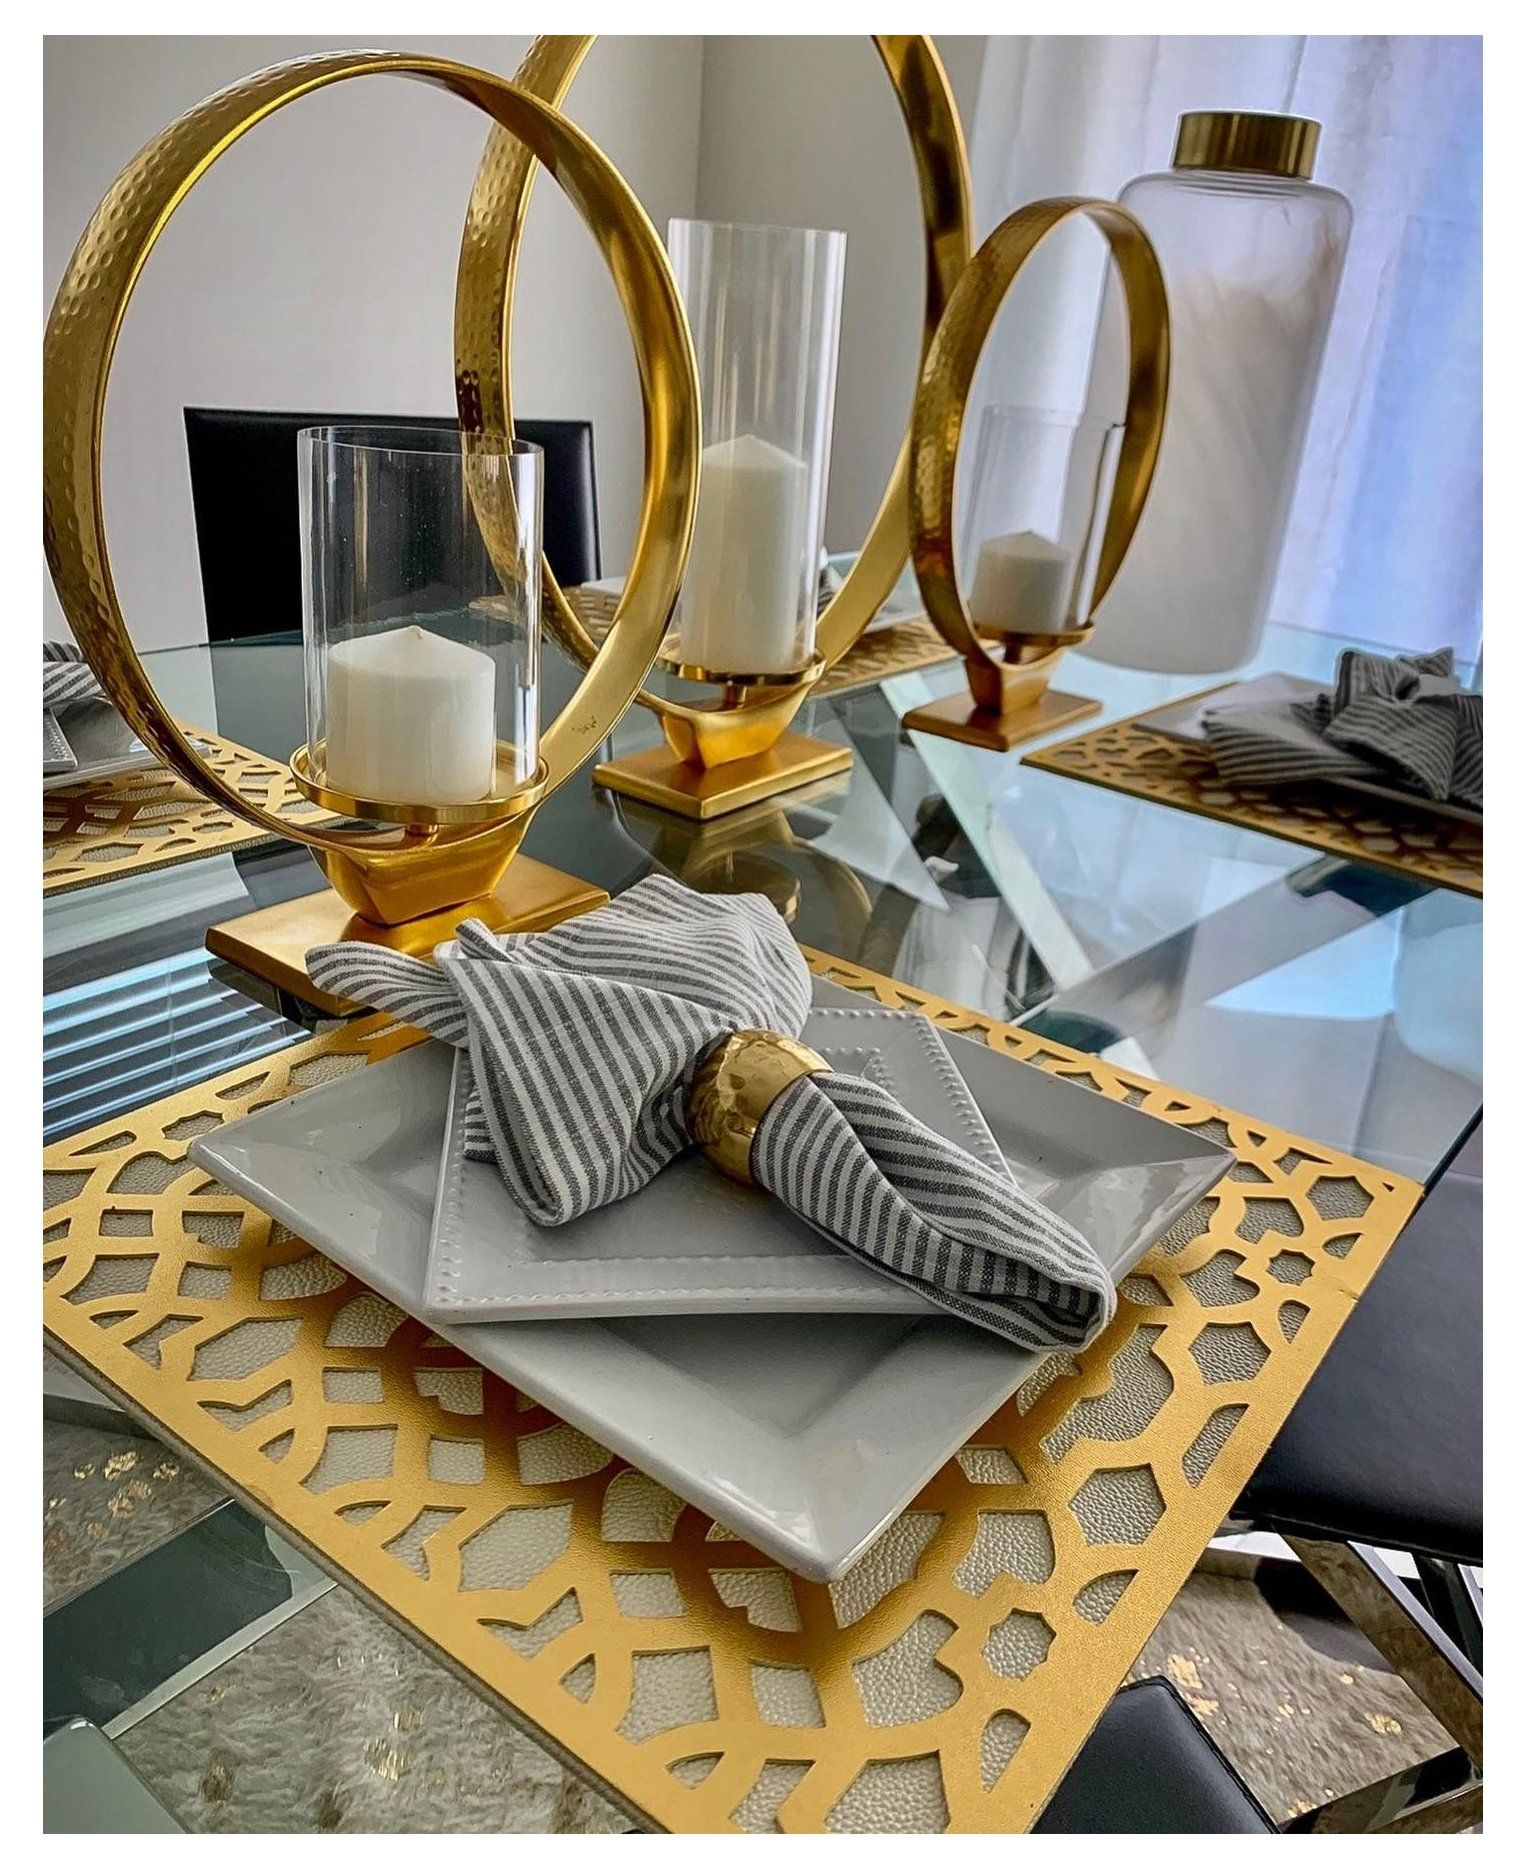 Glam Gold Decor Gold Dining Table Decor Golddiningtabledecor I Love My Dining Room In 2021 Dining Room Table Decor Gold Dining Room Table White Dining Room Decor